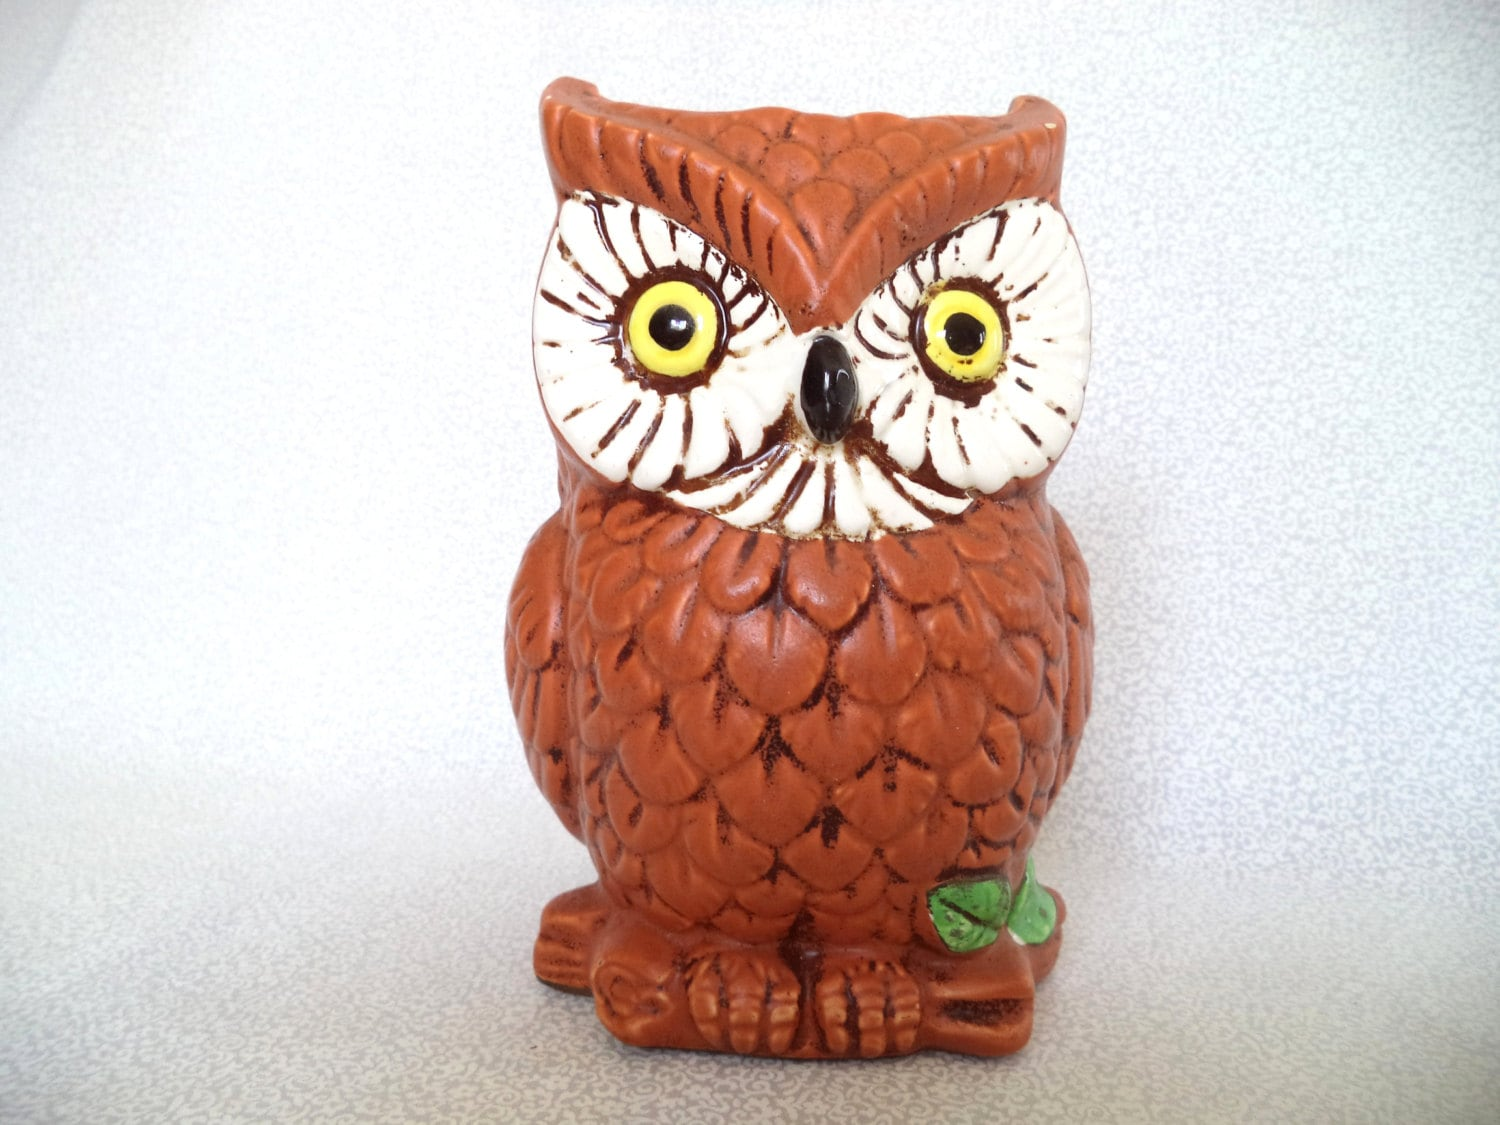 Glass Owl Vase Vintage Brown Owl Vase Ceramic Owl Relpo Owl